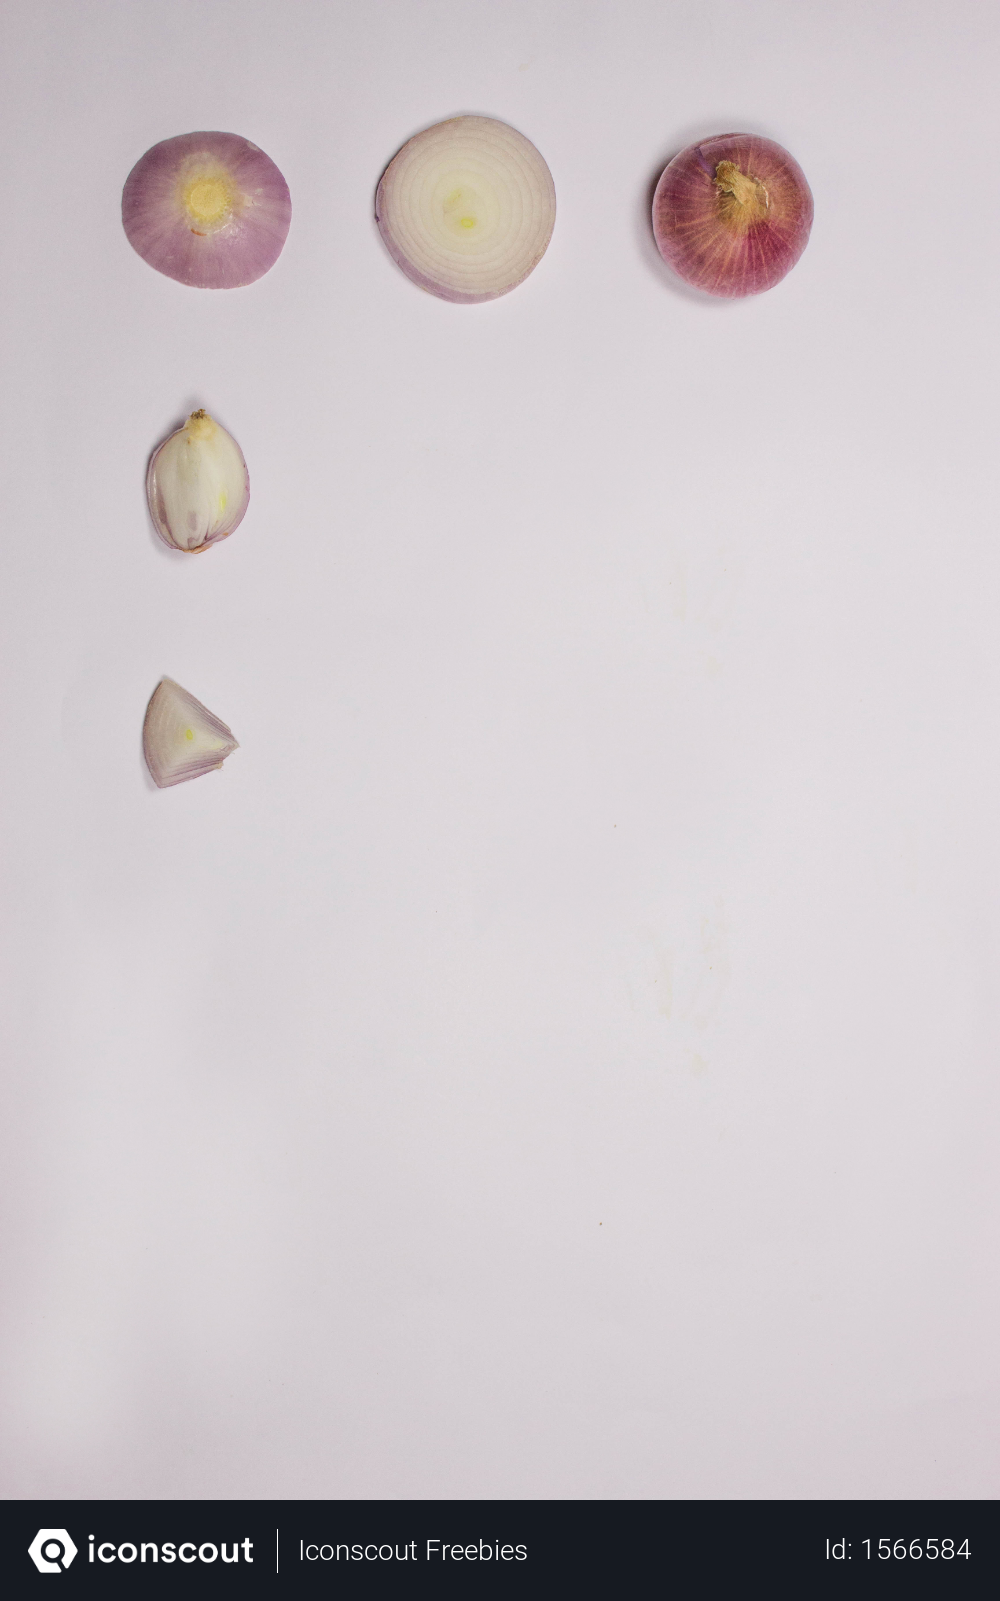 Free Pattern Of Onion And Onion Pieces On Isolated White Background With Space For Text Photo Download In Png Jpg Format Text On Photo White Background Pattern